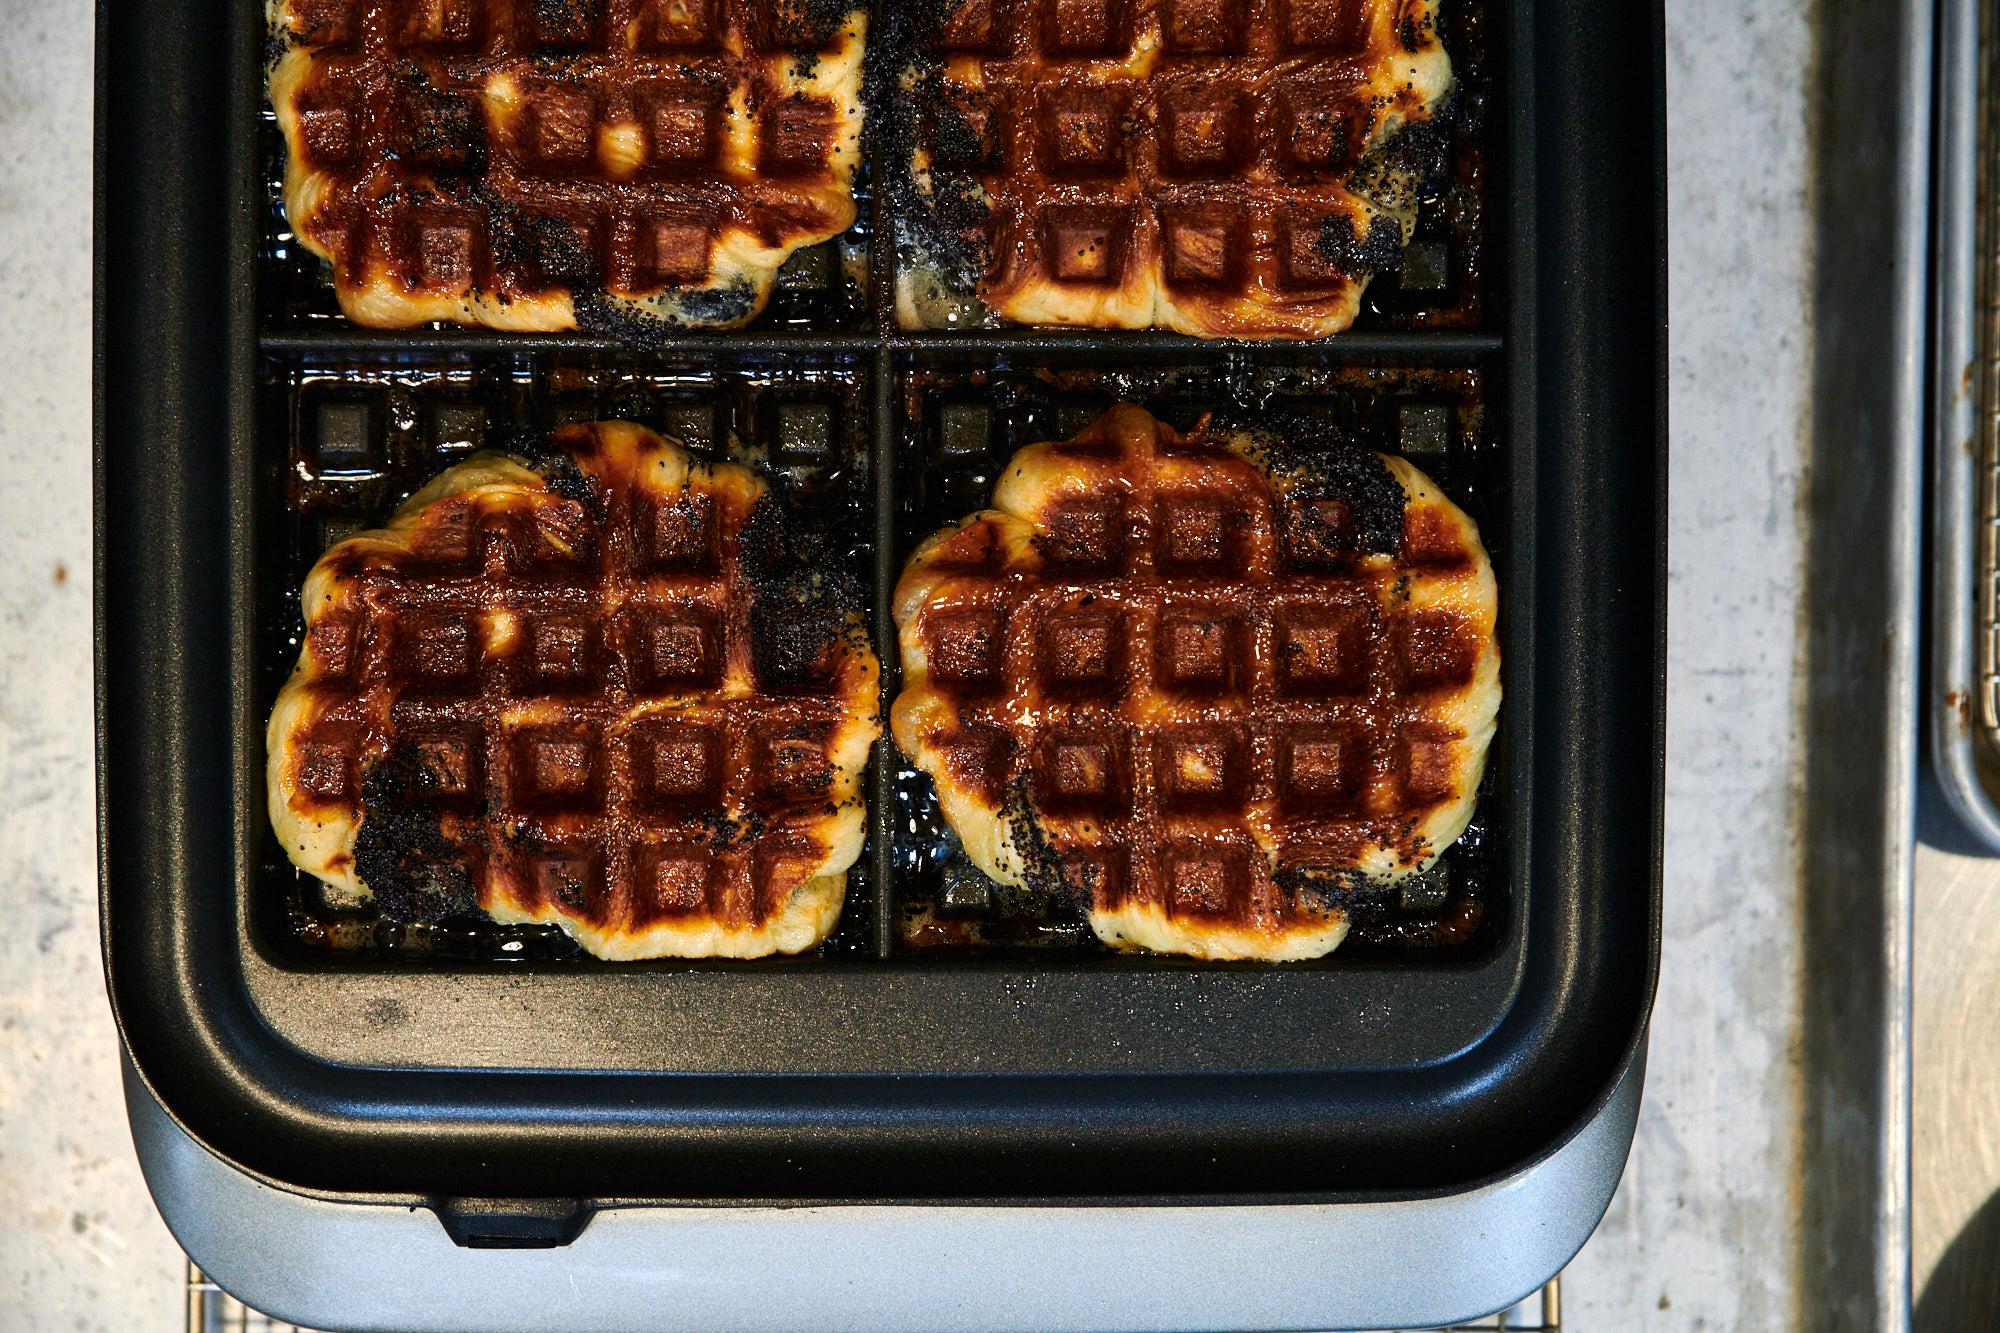 Four babka waffles sit in the waffle press at Ava Gene's. The sugar on the outside of them has created a caramelized brown on them, with patches of black from the poppyseeds